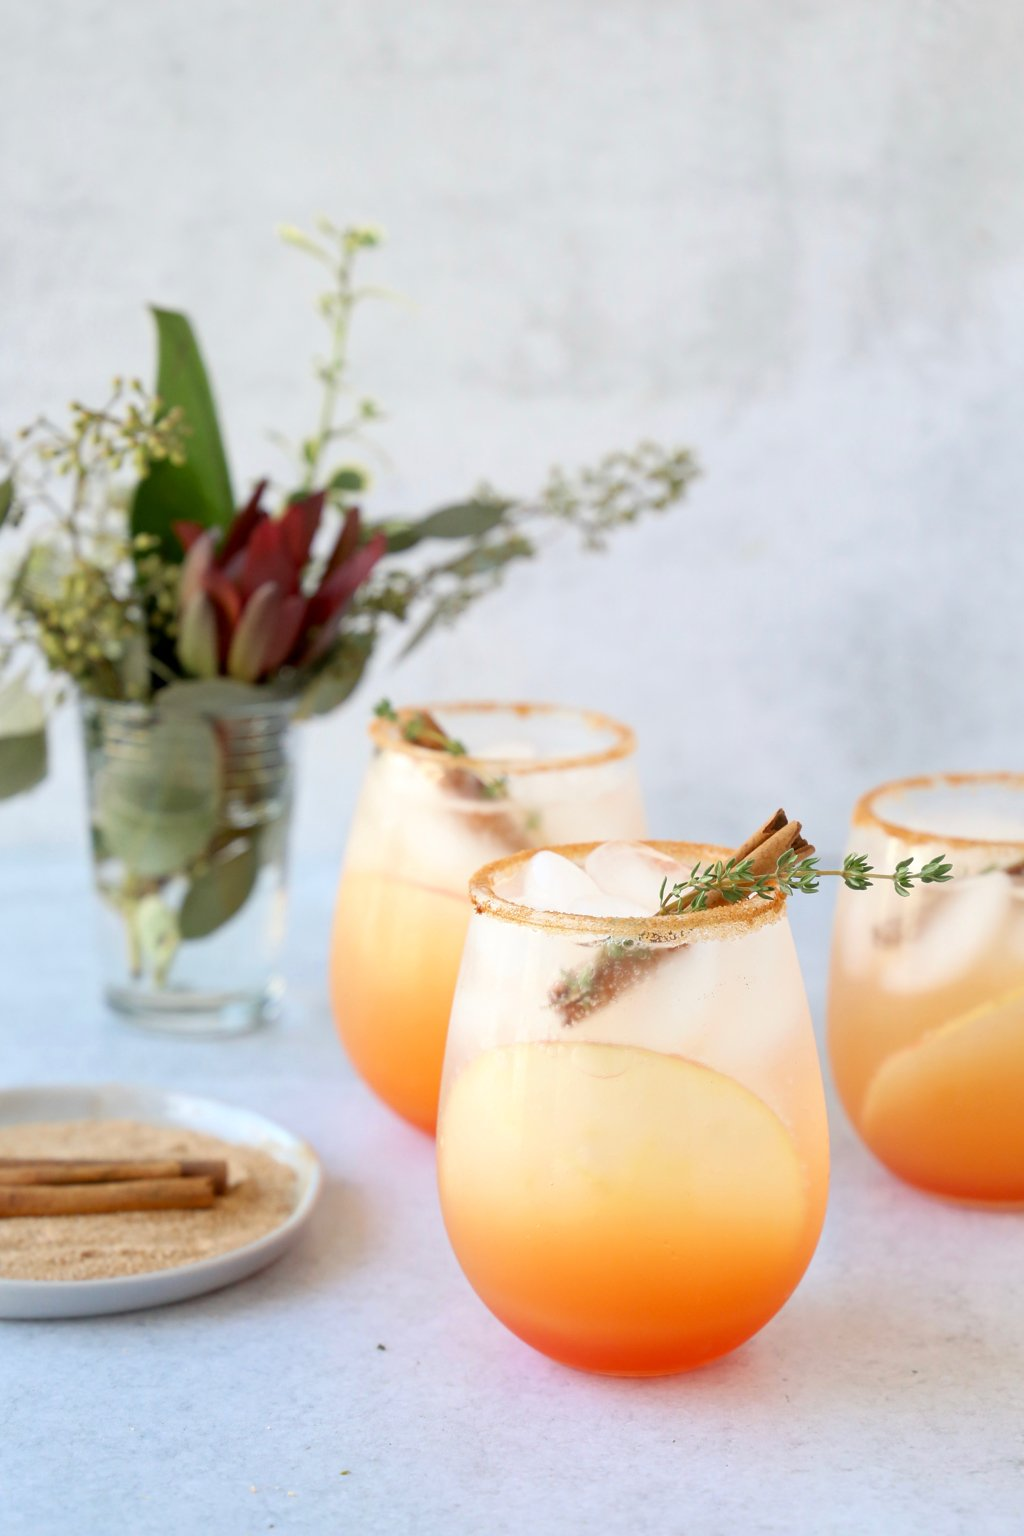 three glasses filled with an orange/red cocktail with a cinnamon stick and thyme leaf sitting next to a small floral arrangement and a dish with cinnamon sugar